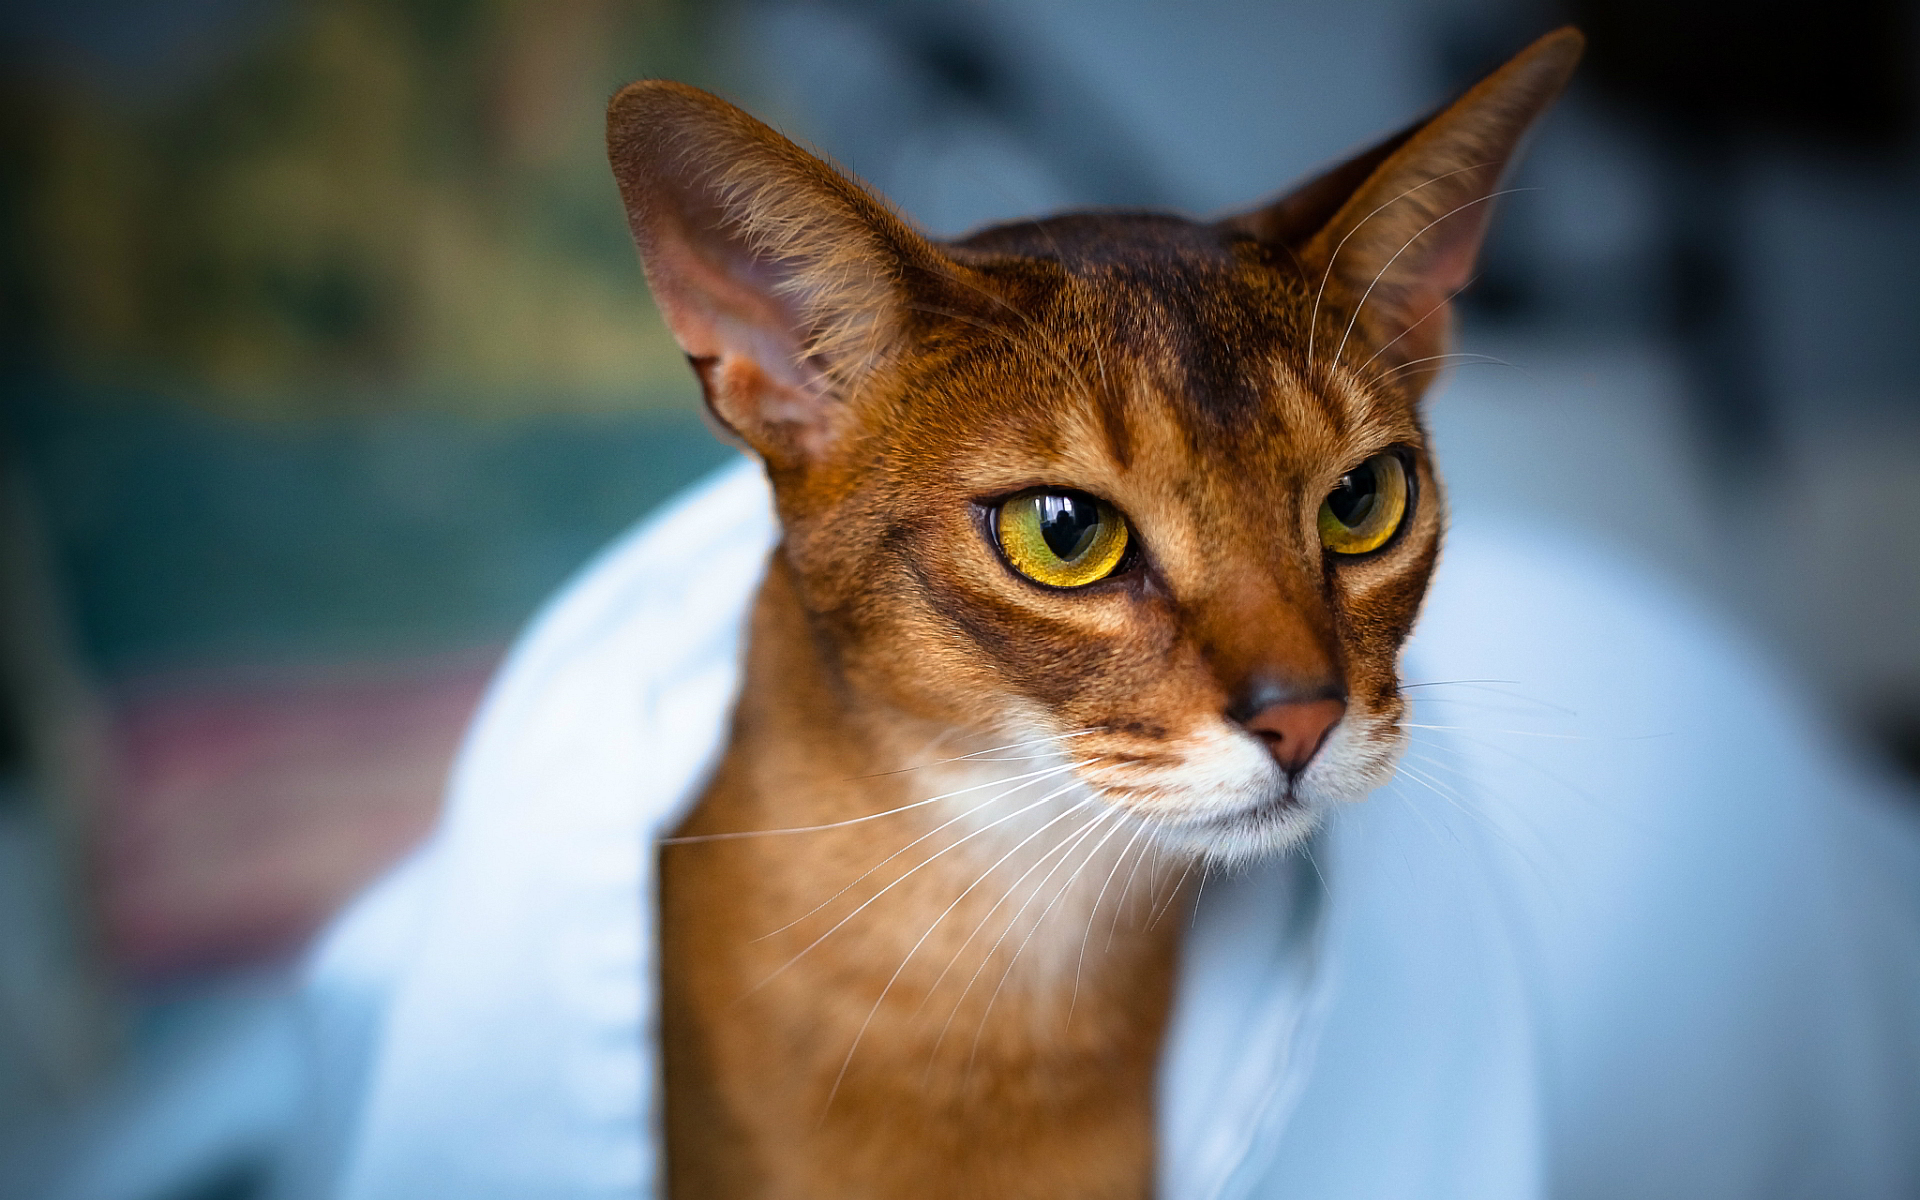 3D Abyssinian Cat Wallpapers For PC Cat Abyssinian 3d Cat 1920x1200